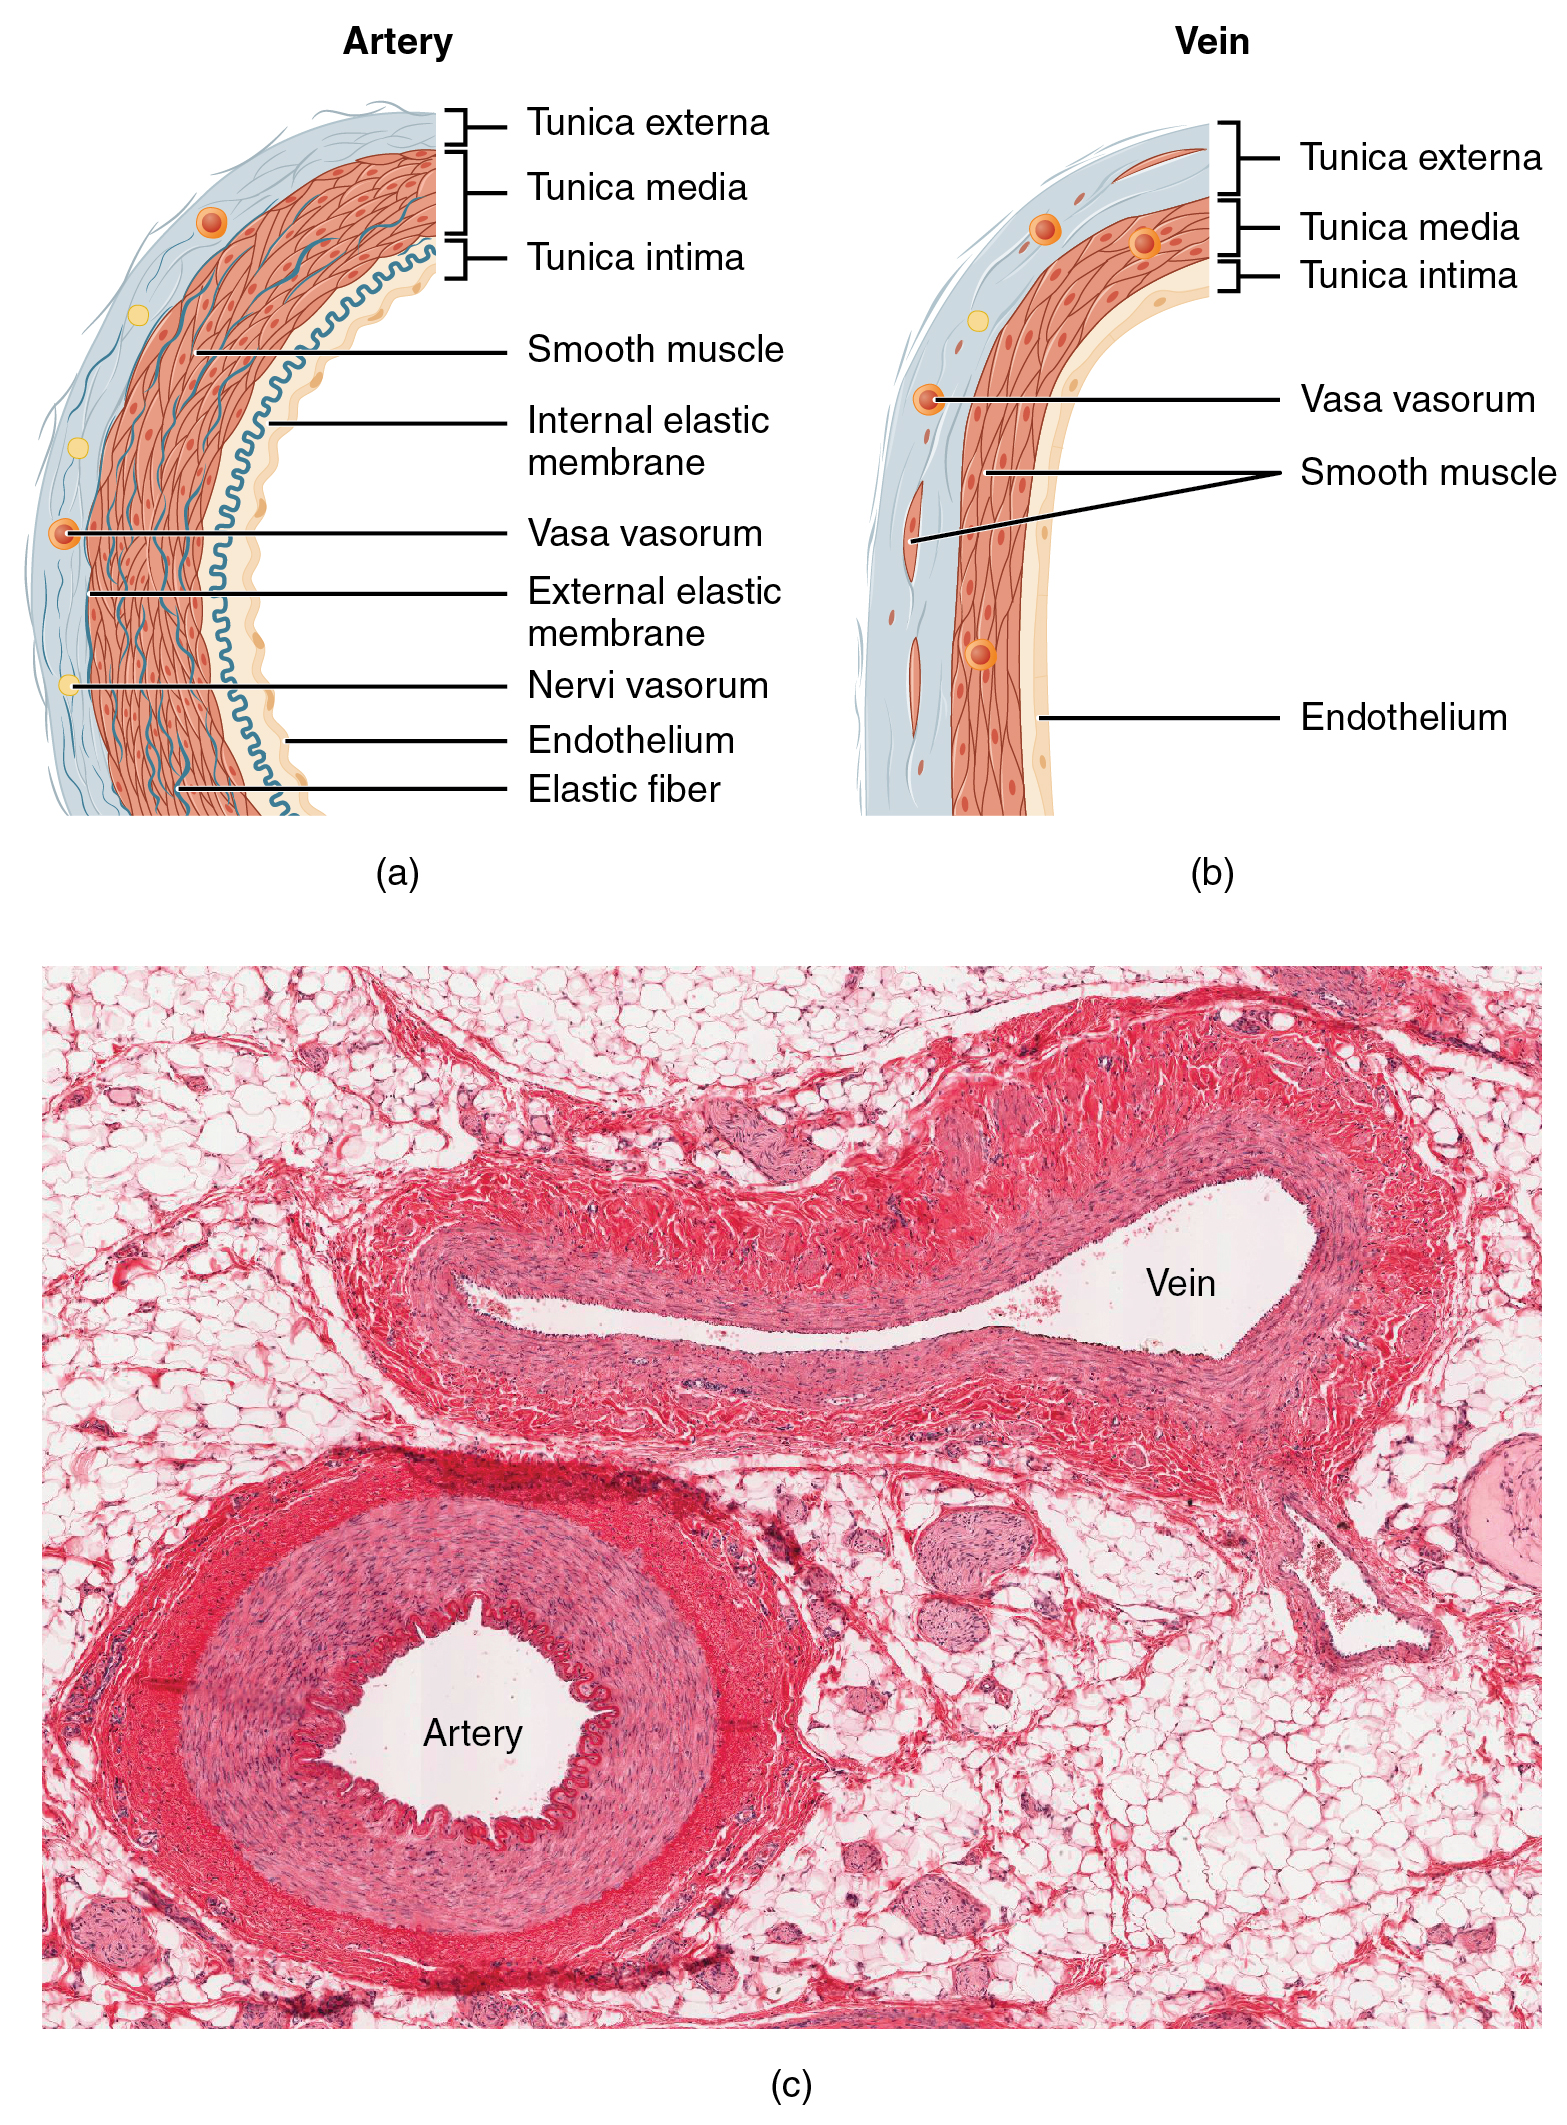 Development Of An Electromagnetic Induction Method For Non Invasive Fileoptic Fibrenumerical Aperture Diagramsvg Wikimedia Commons Blood Flow Measurement In Clinical Applications